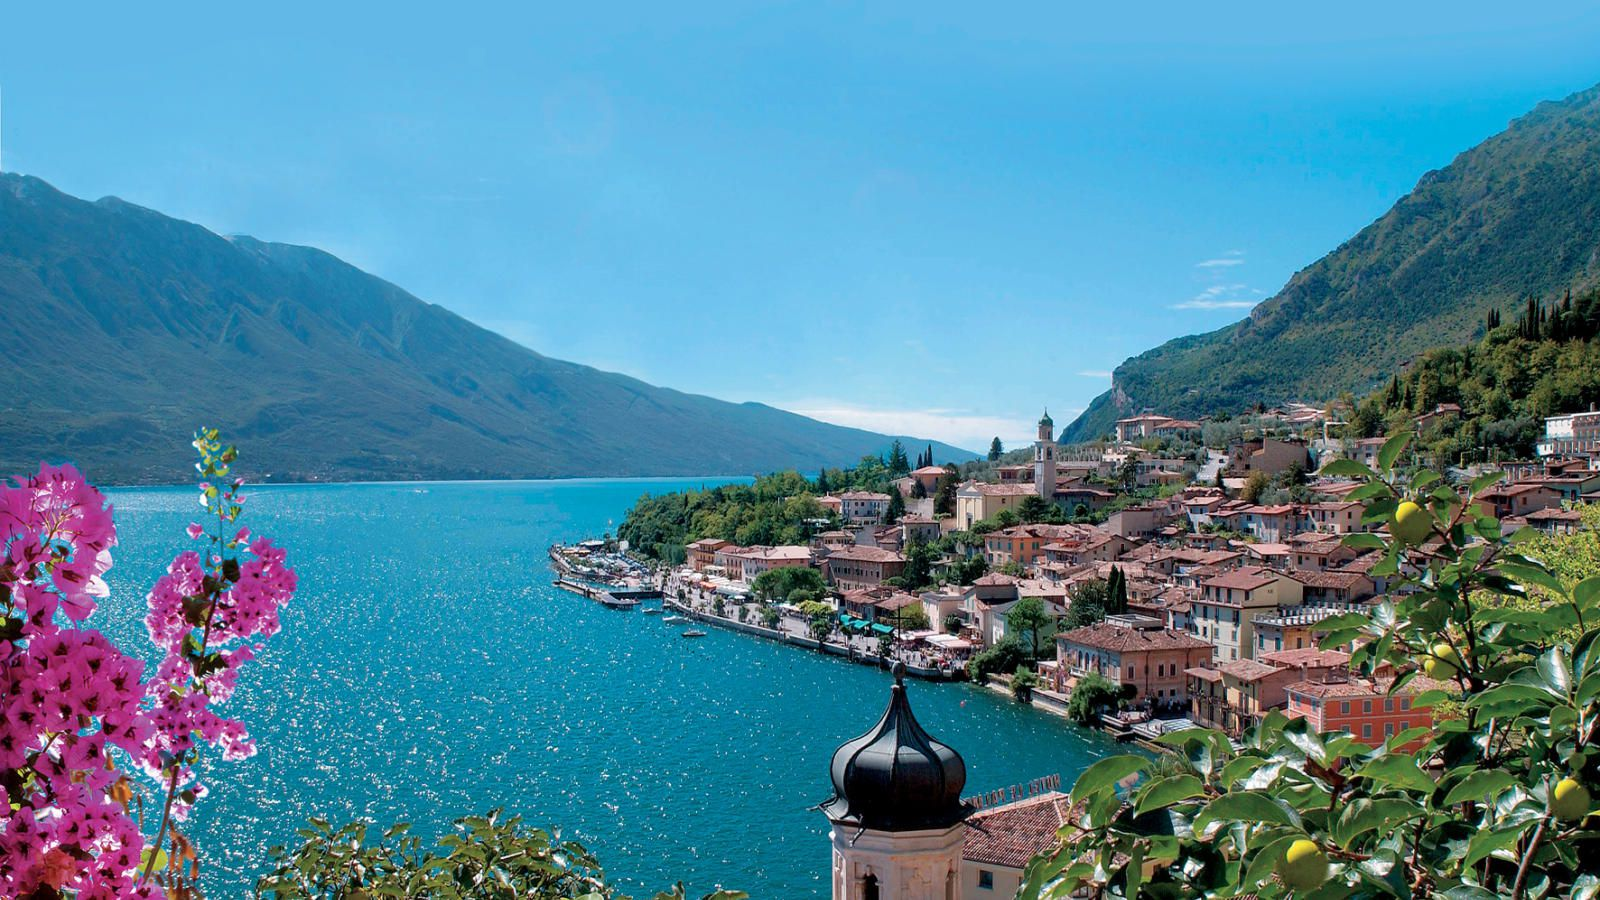 Lake Garda location